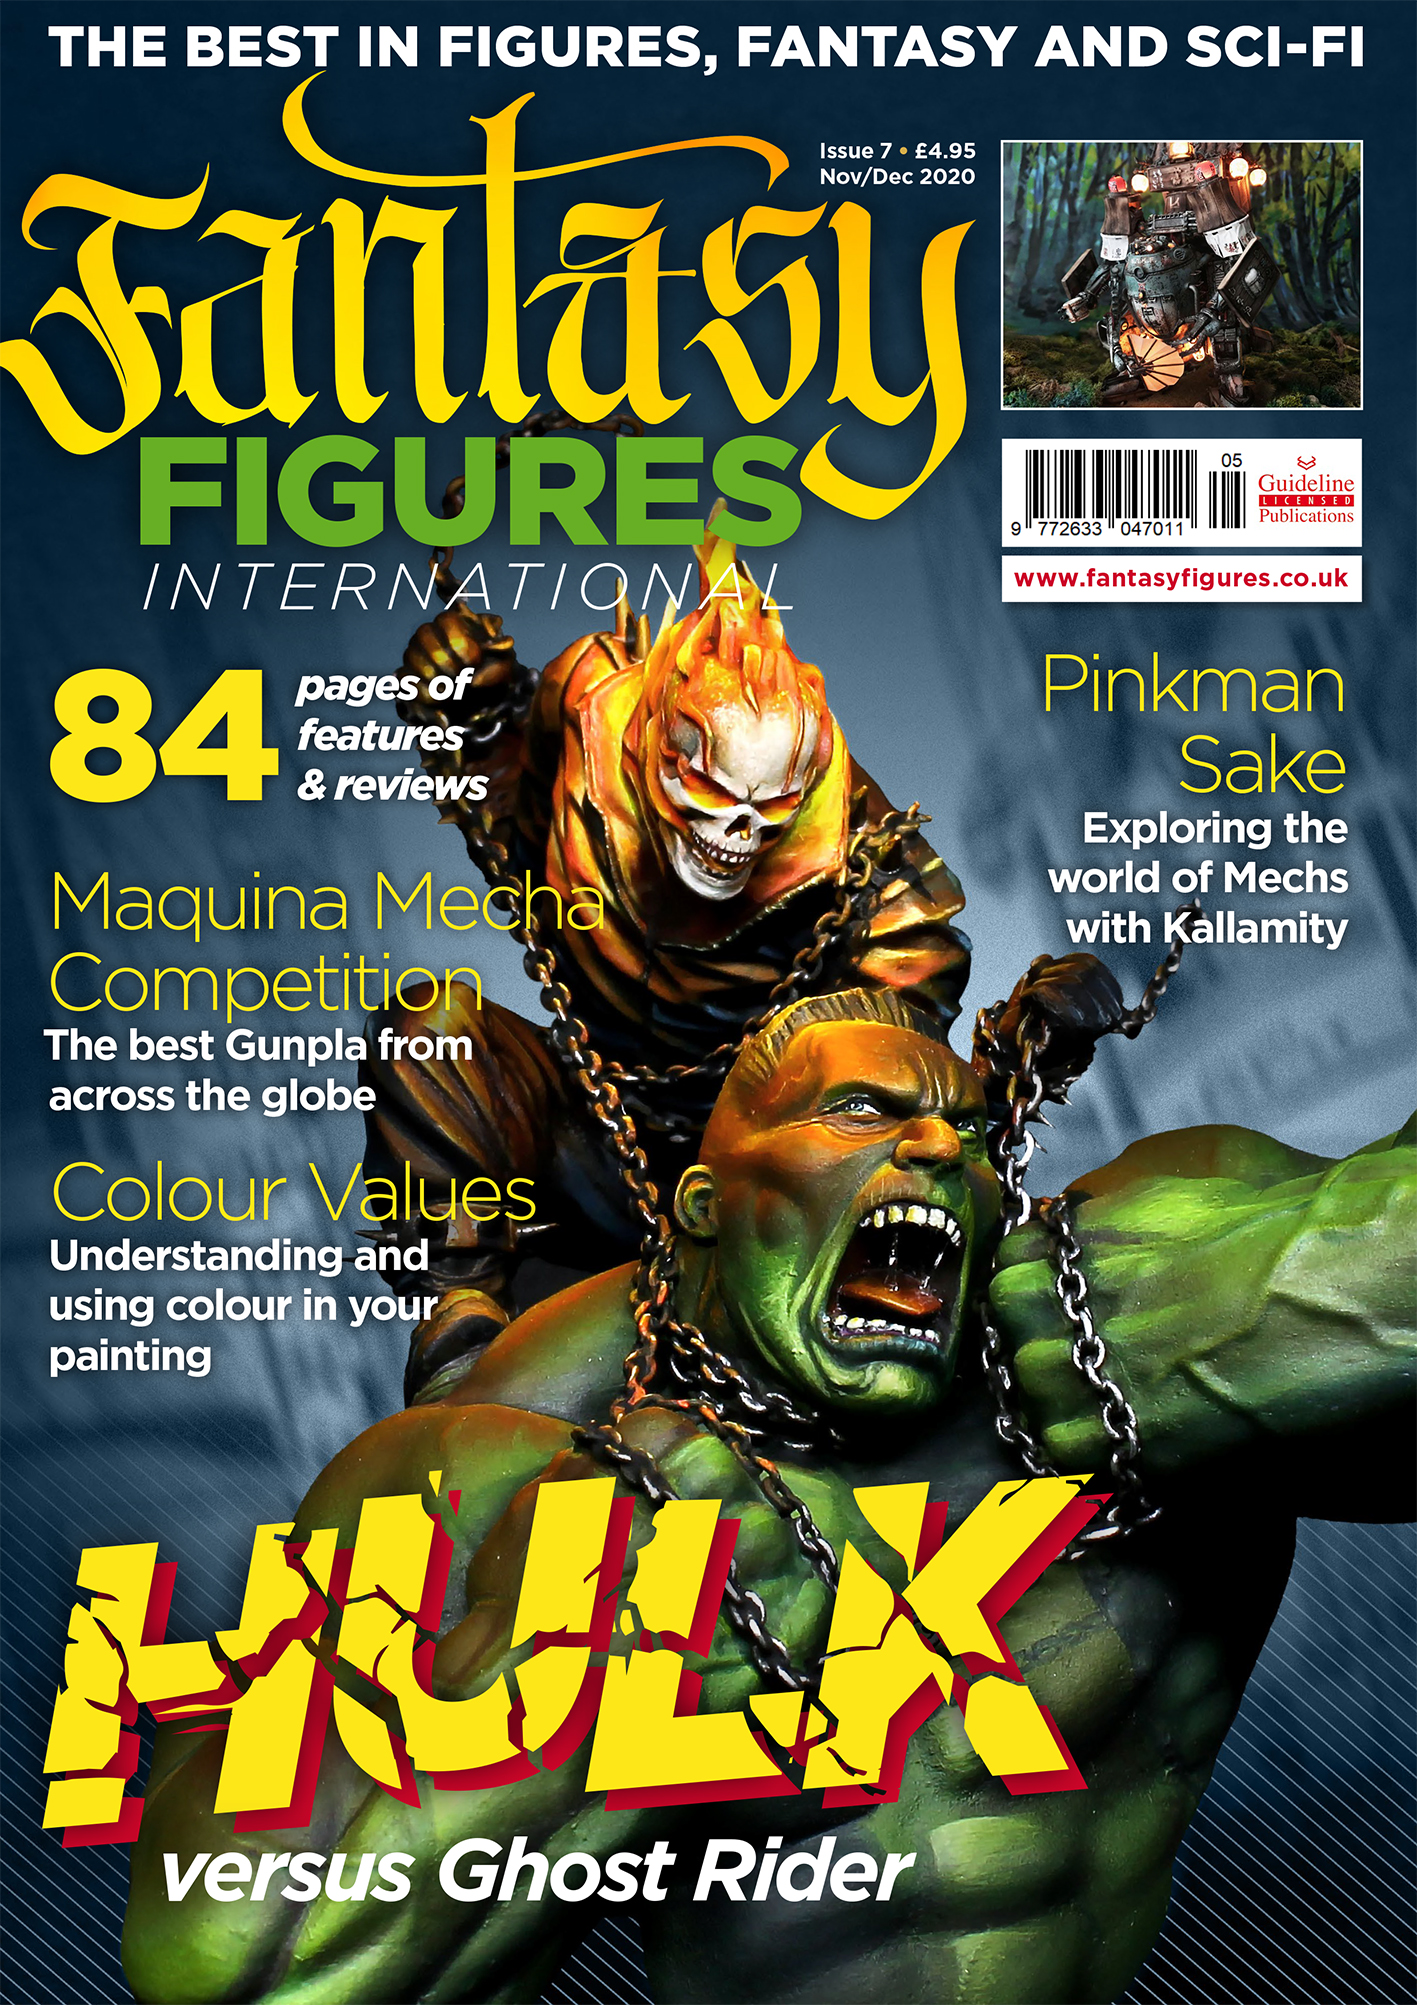 Guideline Publications Fantasy Figure International  Issue 7 Nov/Dec 2020